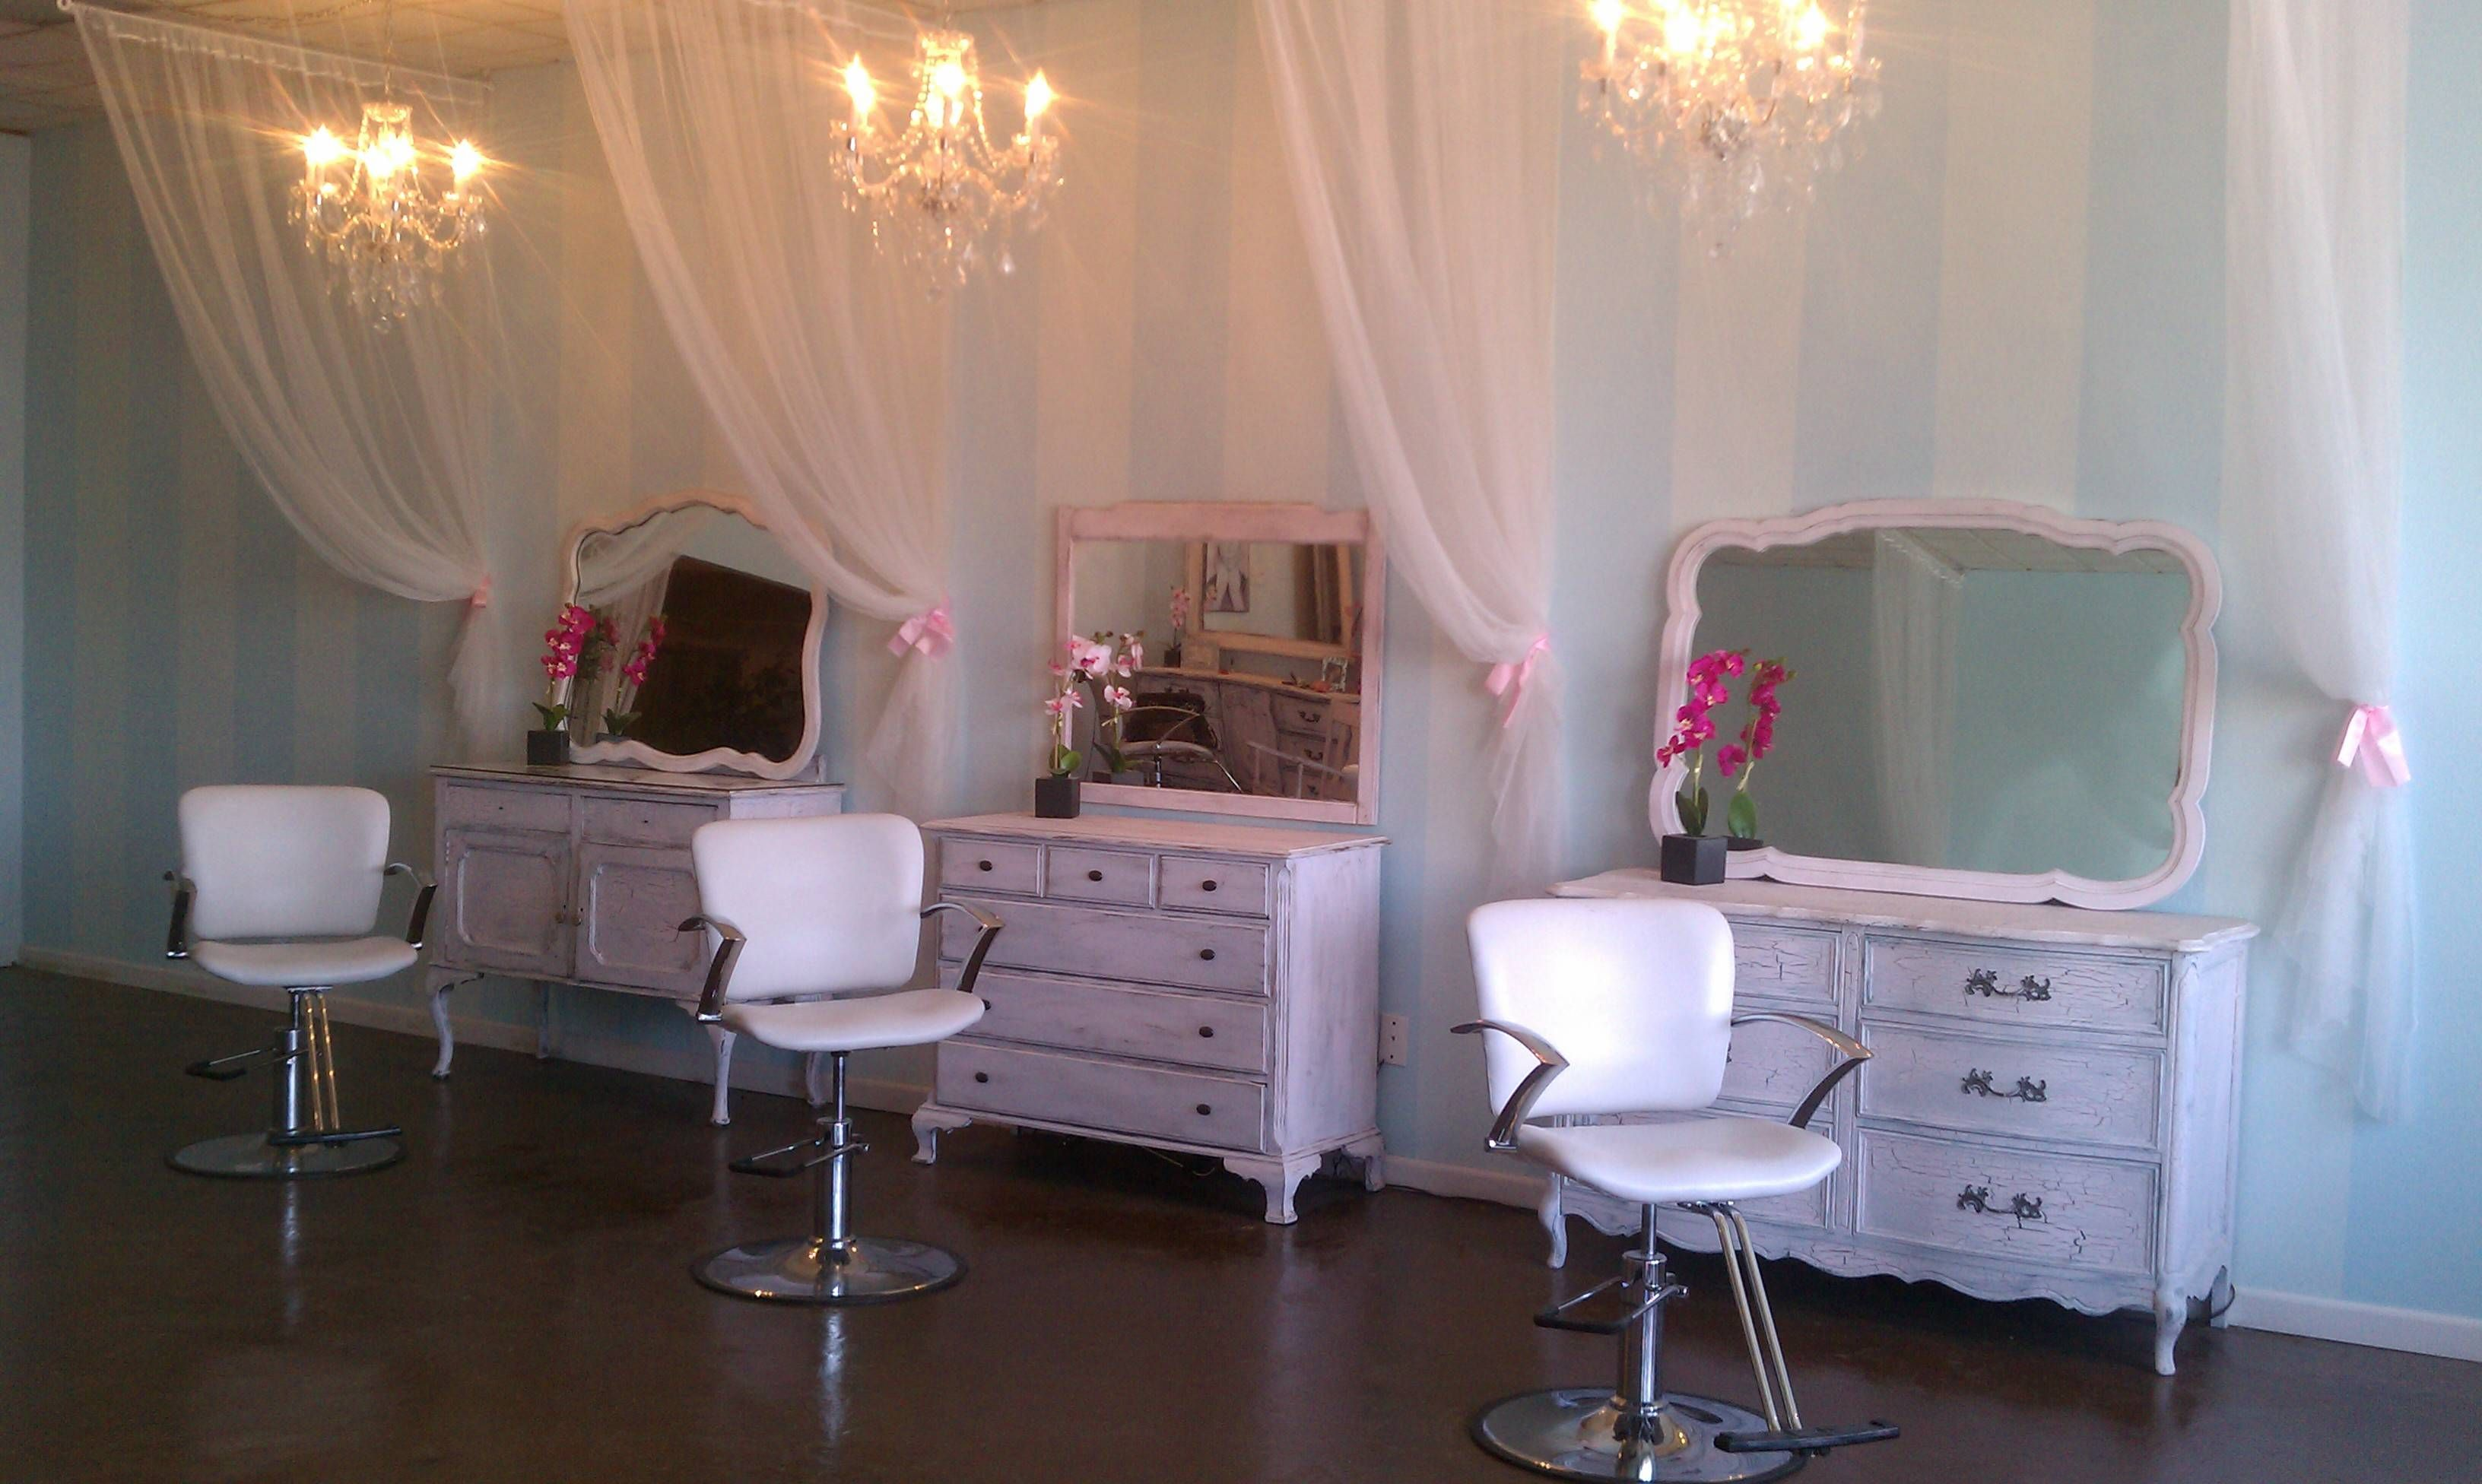 I Used Old Dressers For Stylist Stations In My Salon. Salon Envy In  Waxahachie, Tx. If You Want To See More Salon Ideas U Can Like Our Page On  FB @ Salon ...